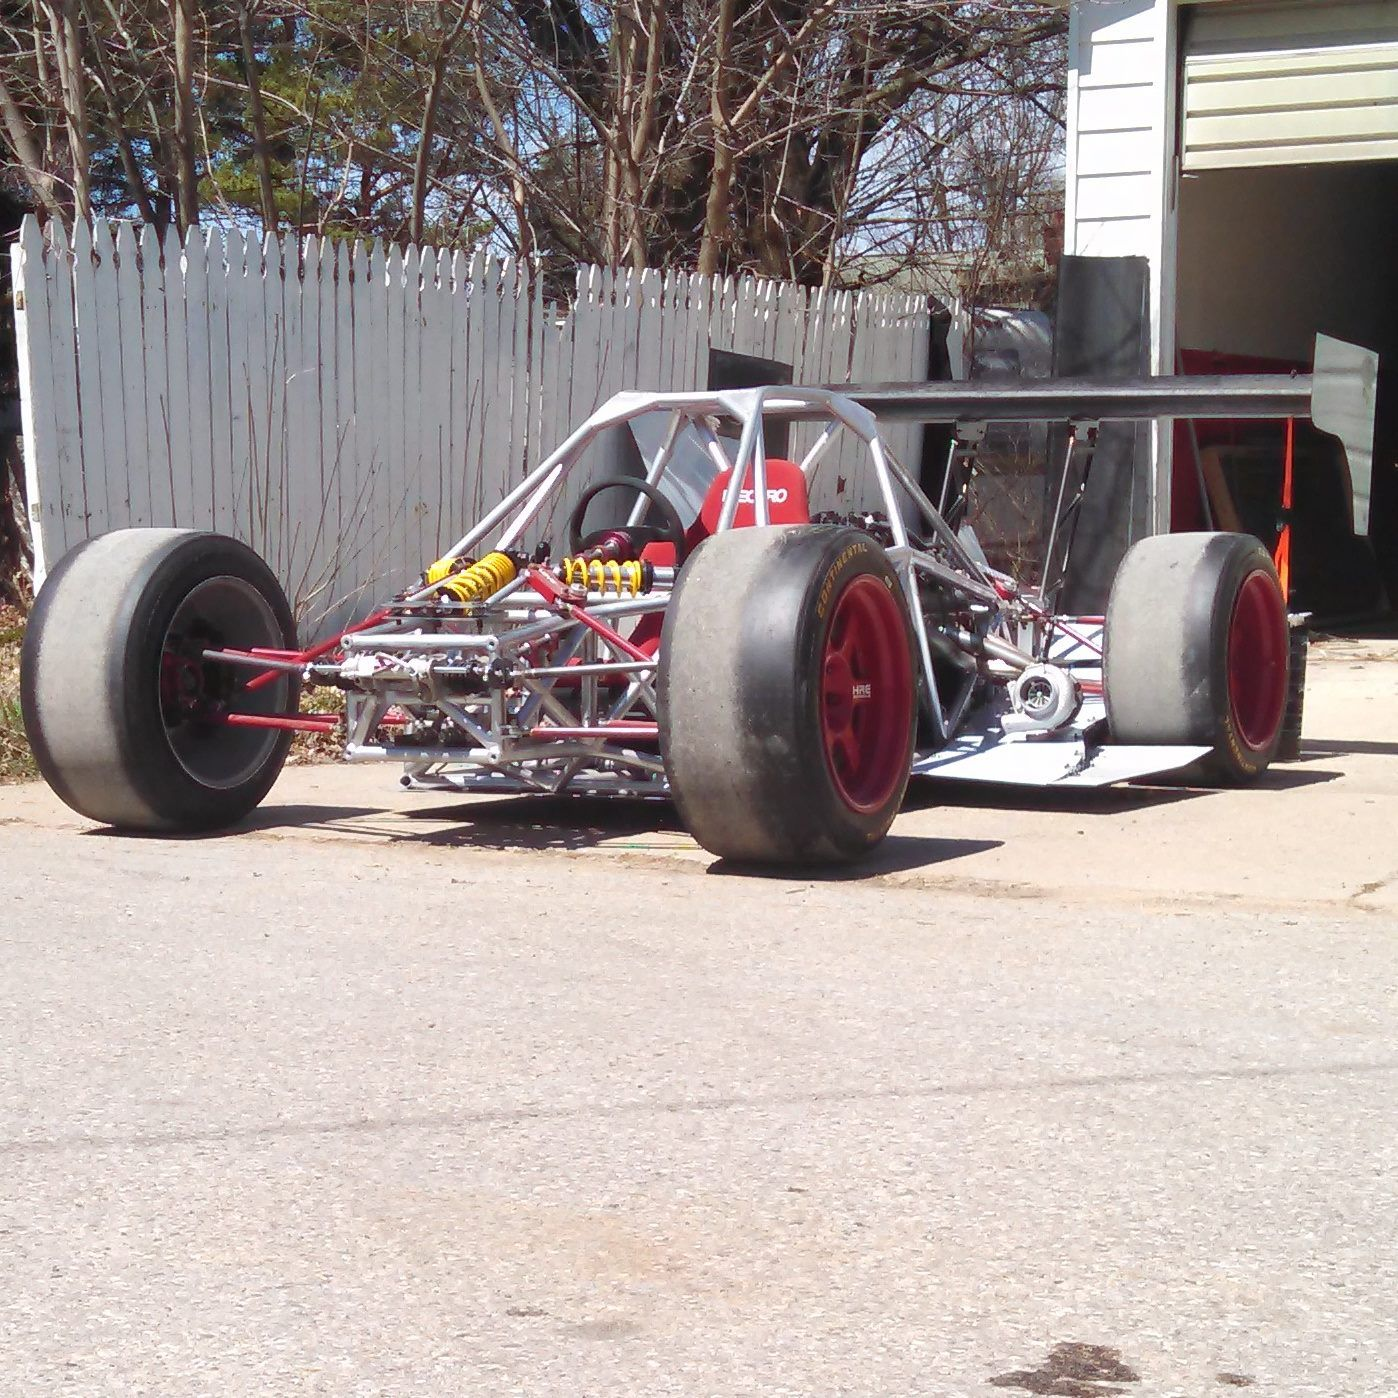 Twin Turbo V8 Ed Single Seat Go Kart Built By Lovefab Inc Promoted The Fab Forums